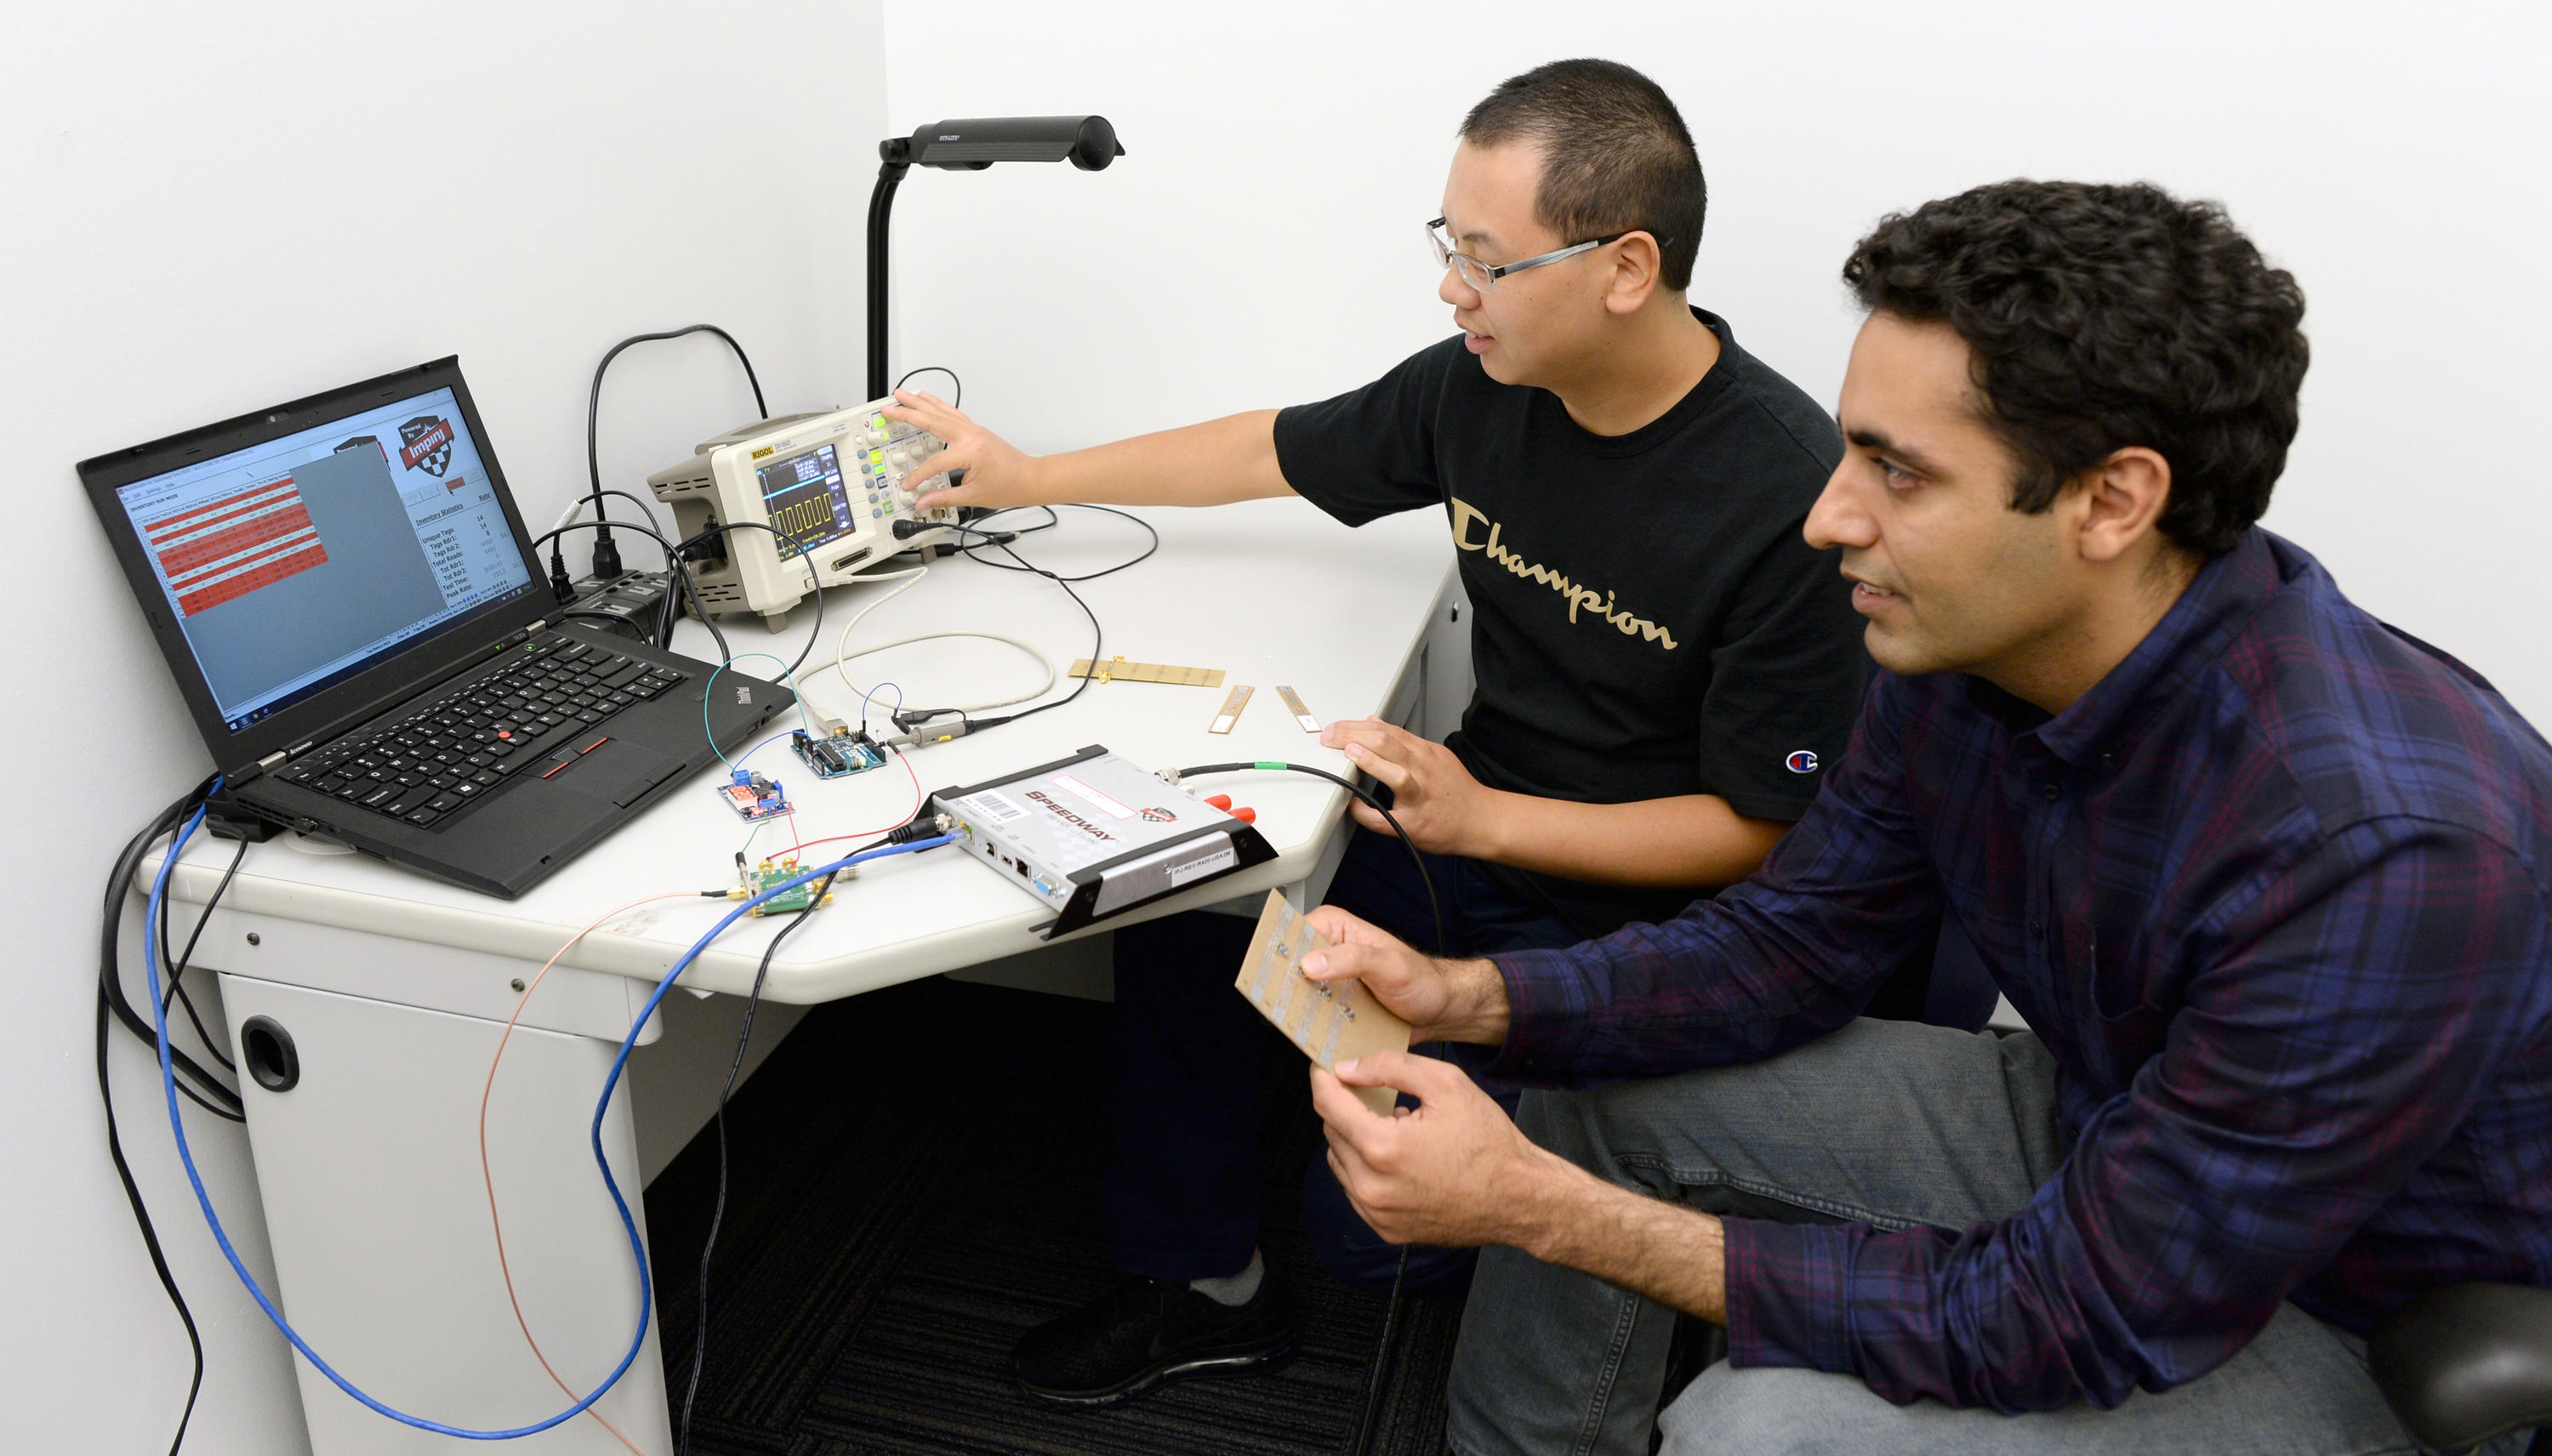 Wang and Abari demonstrate their Internet of Things hack at a computer.